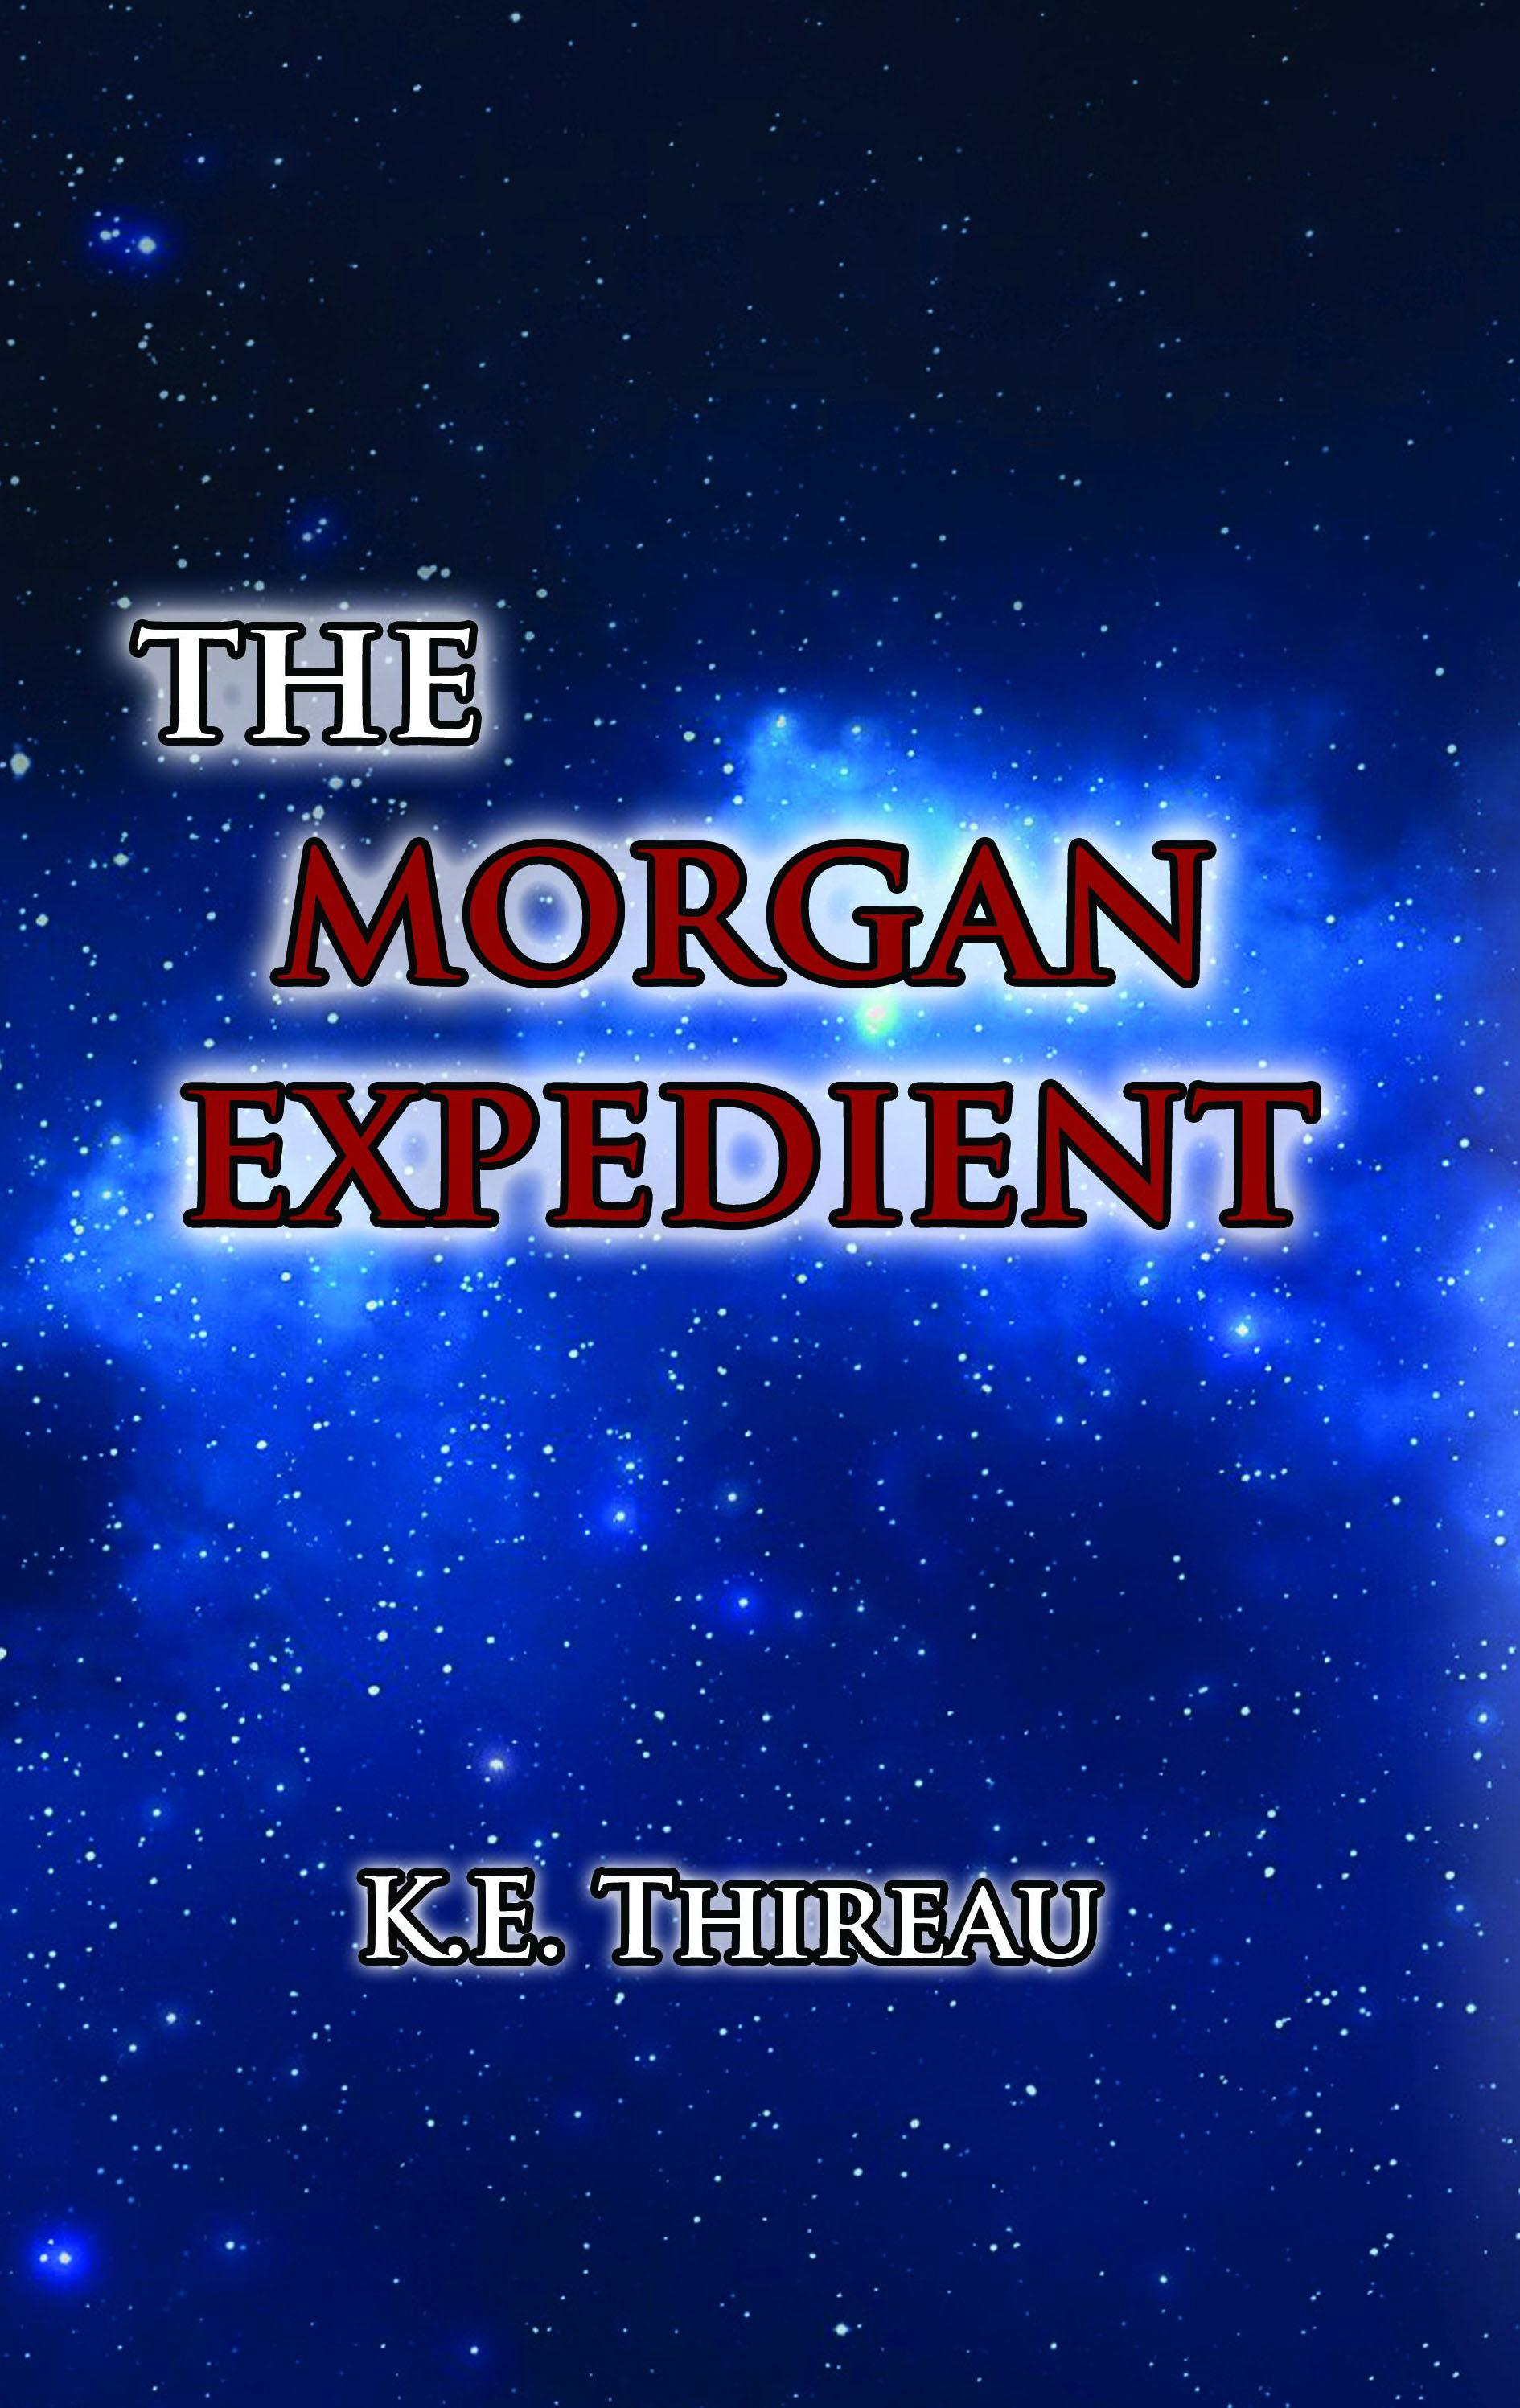 THIREAU, K.E. - THE MORGAN EXPEDIENT (ANGOL NYELVŰ)